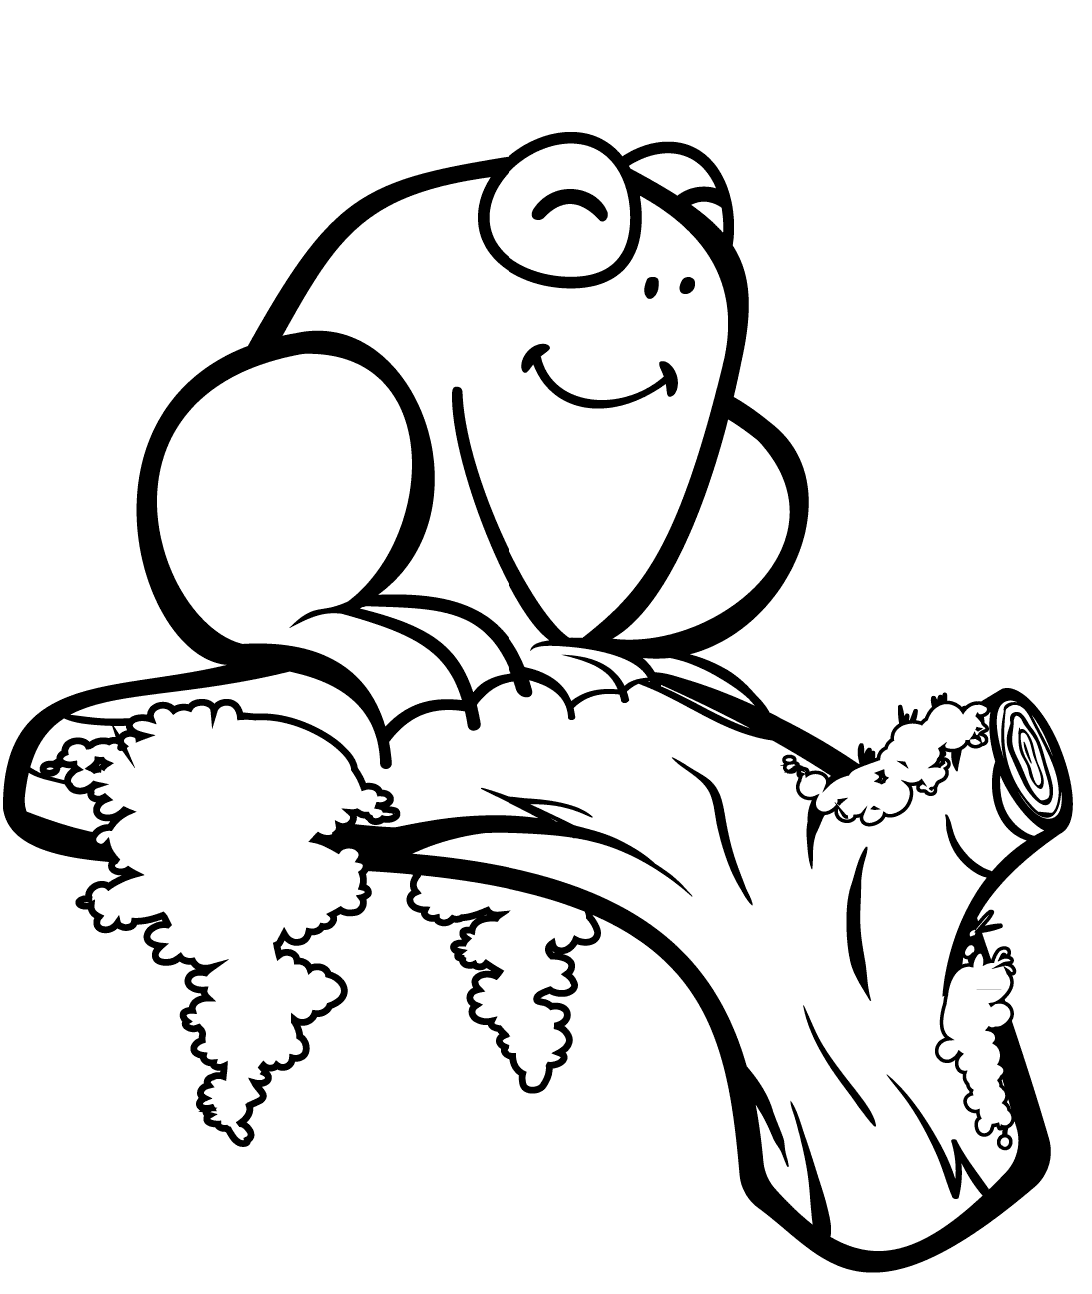 Frog Colouring Pages